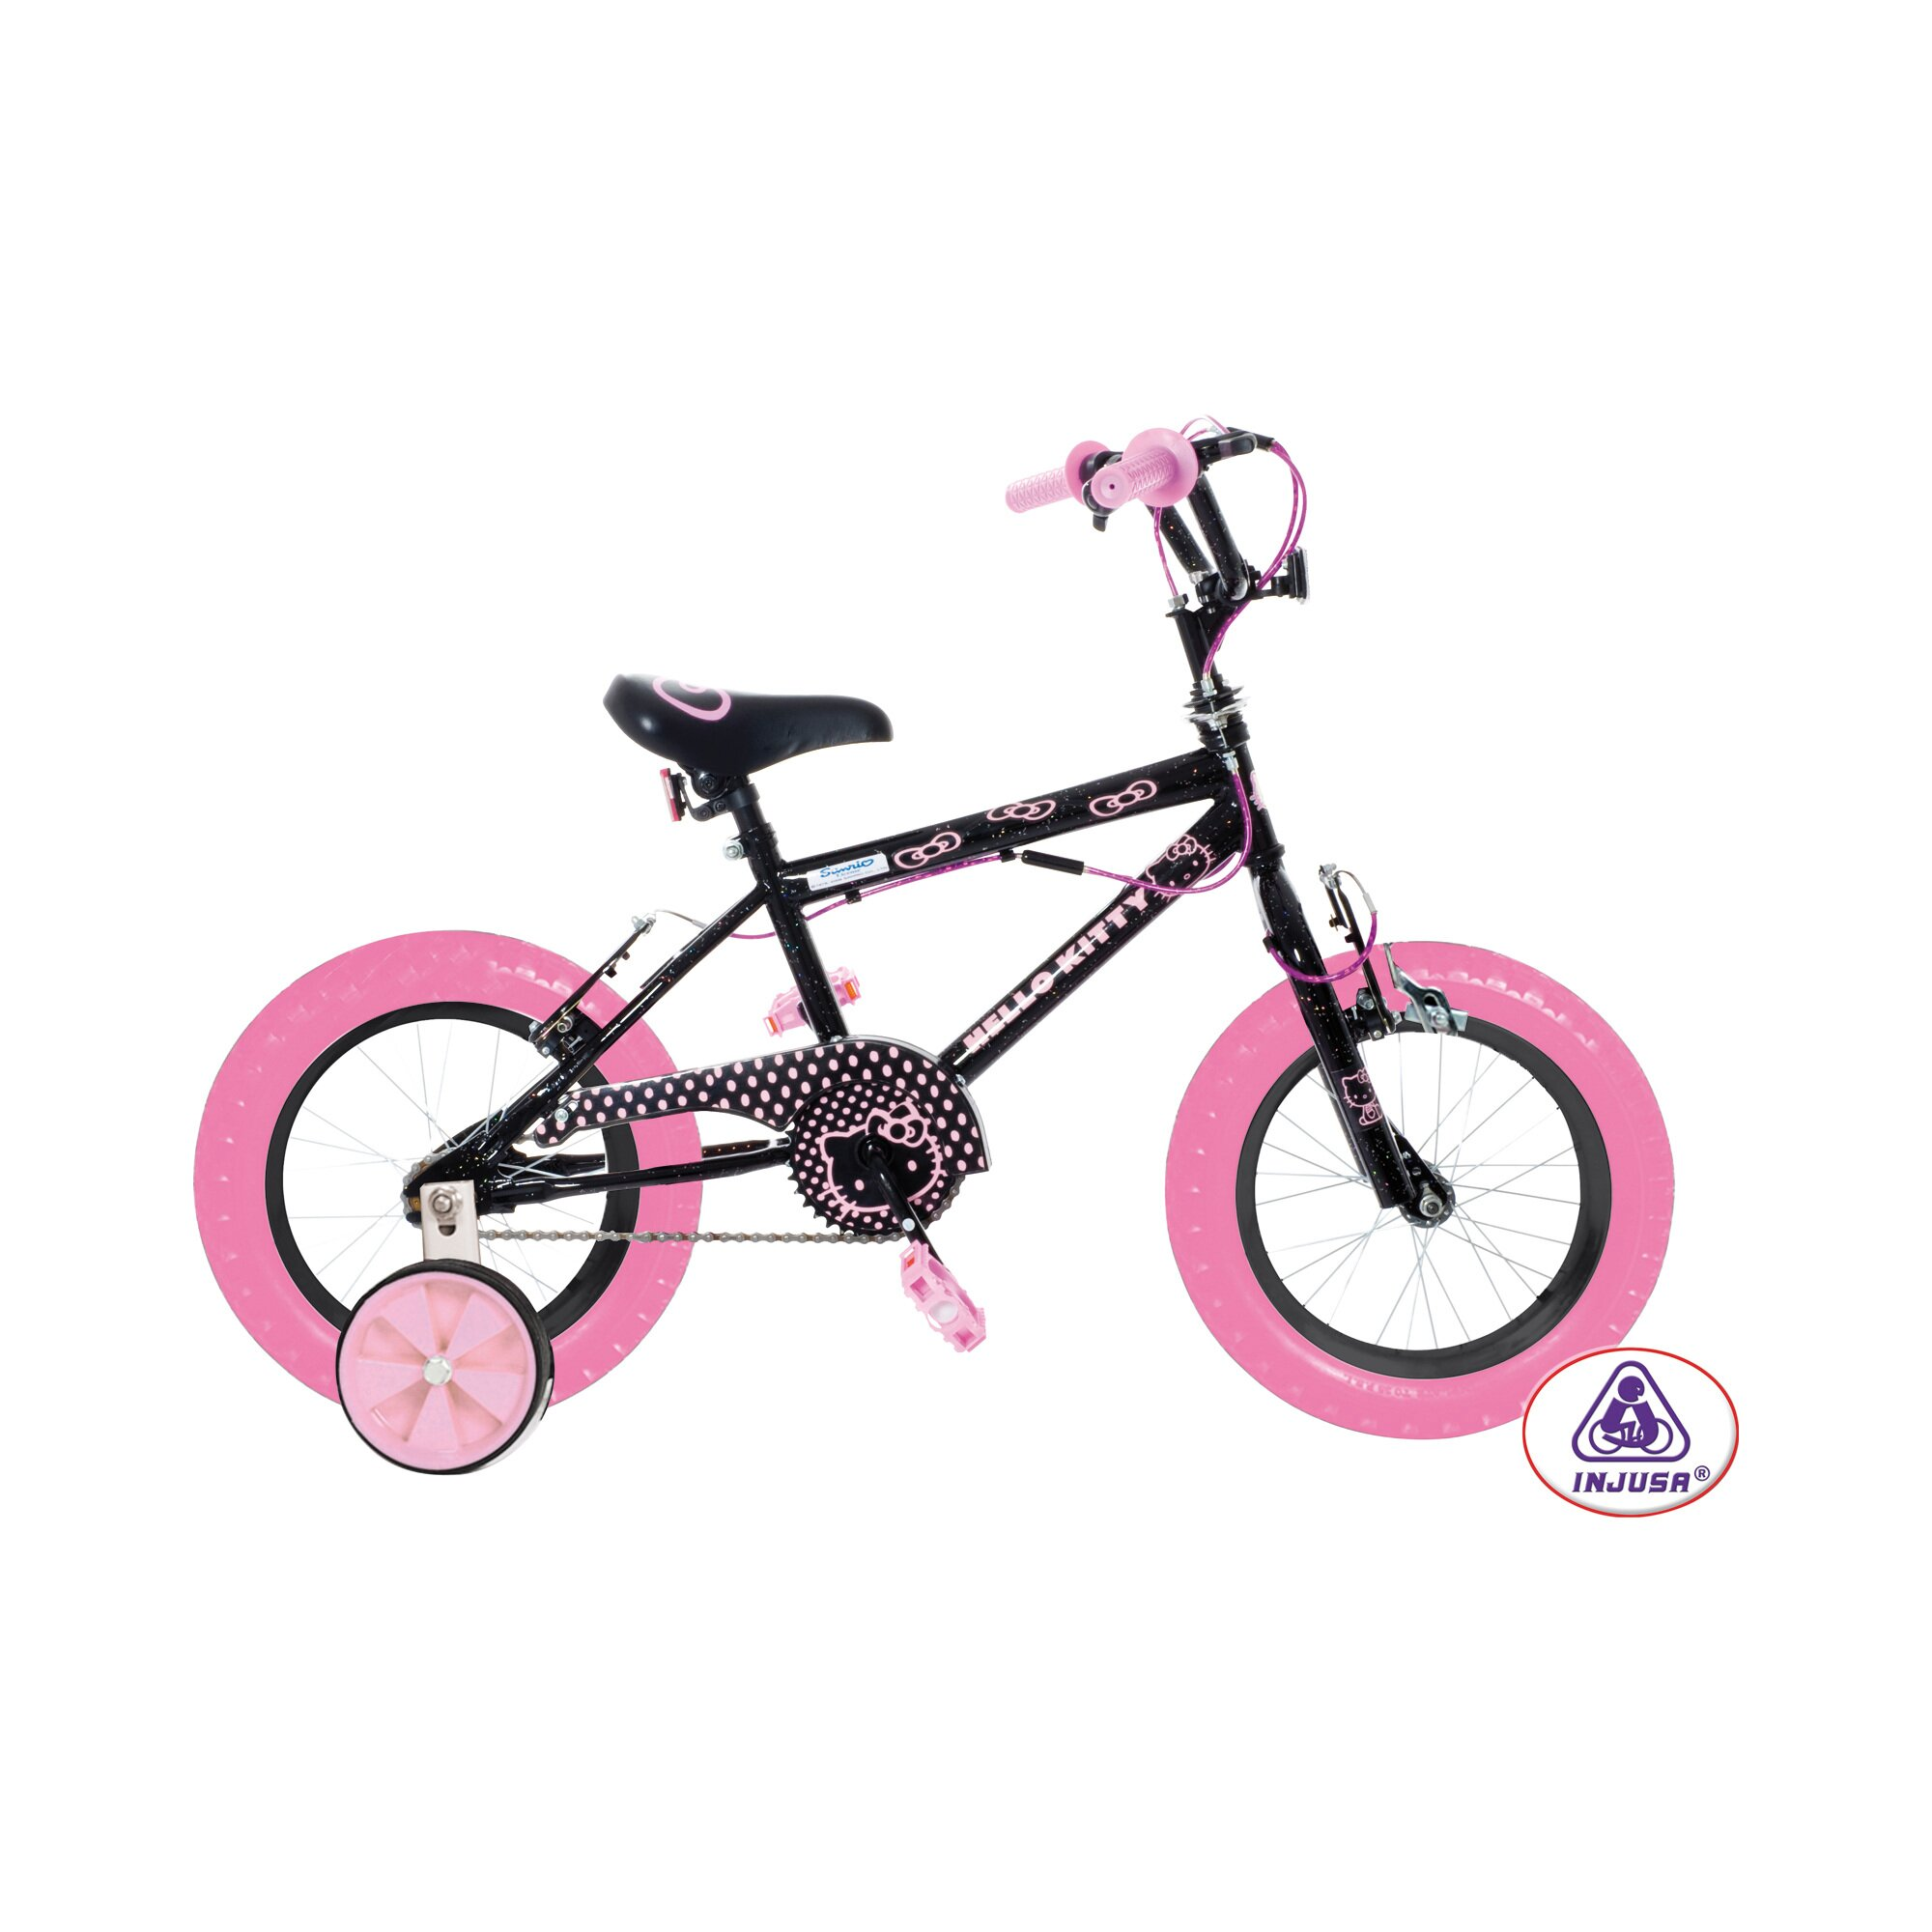 INJUSA Hello Kitty Kinderfahrrad Hello Kitty 12 Zoll